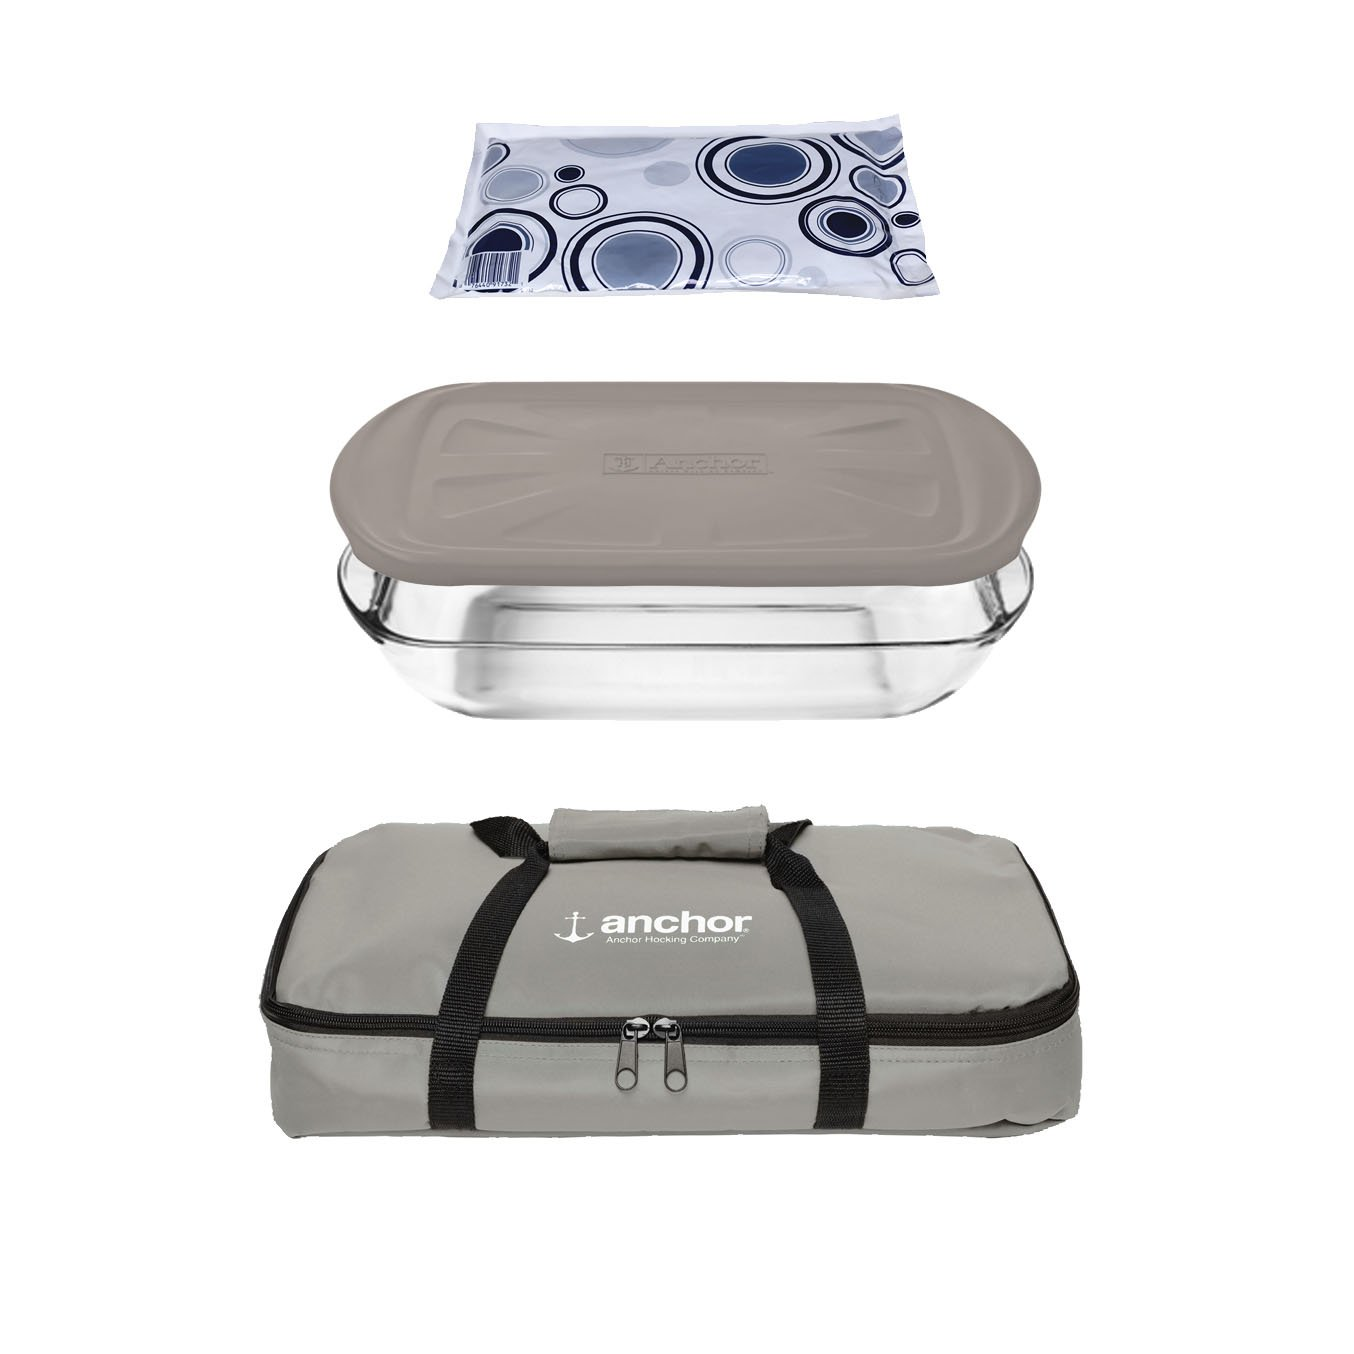 Anchor Hocking Oven Basics 4Piece Bake-N-Take Bakeware Set, Pepper Gray 12897ECOM